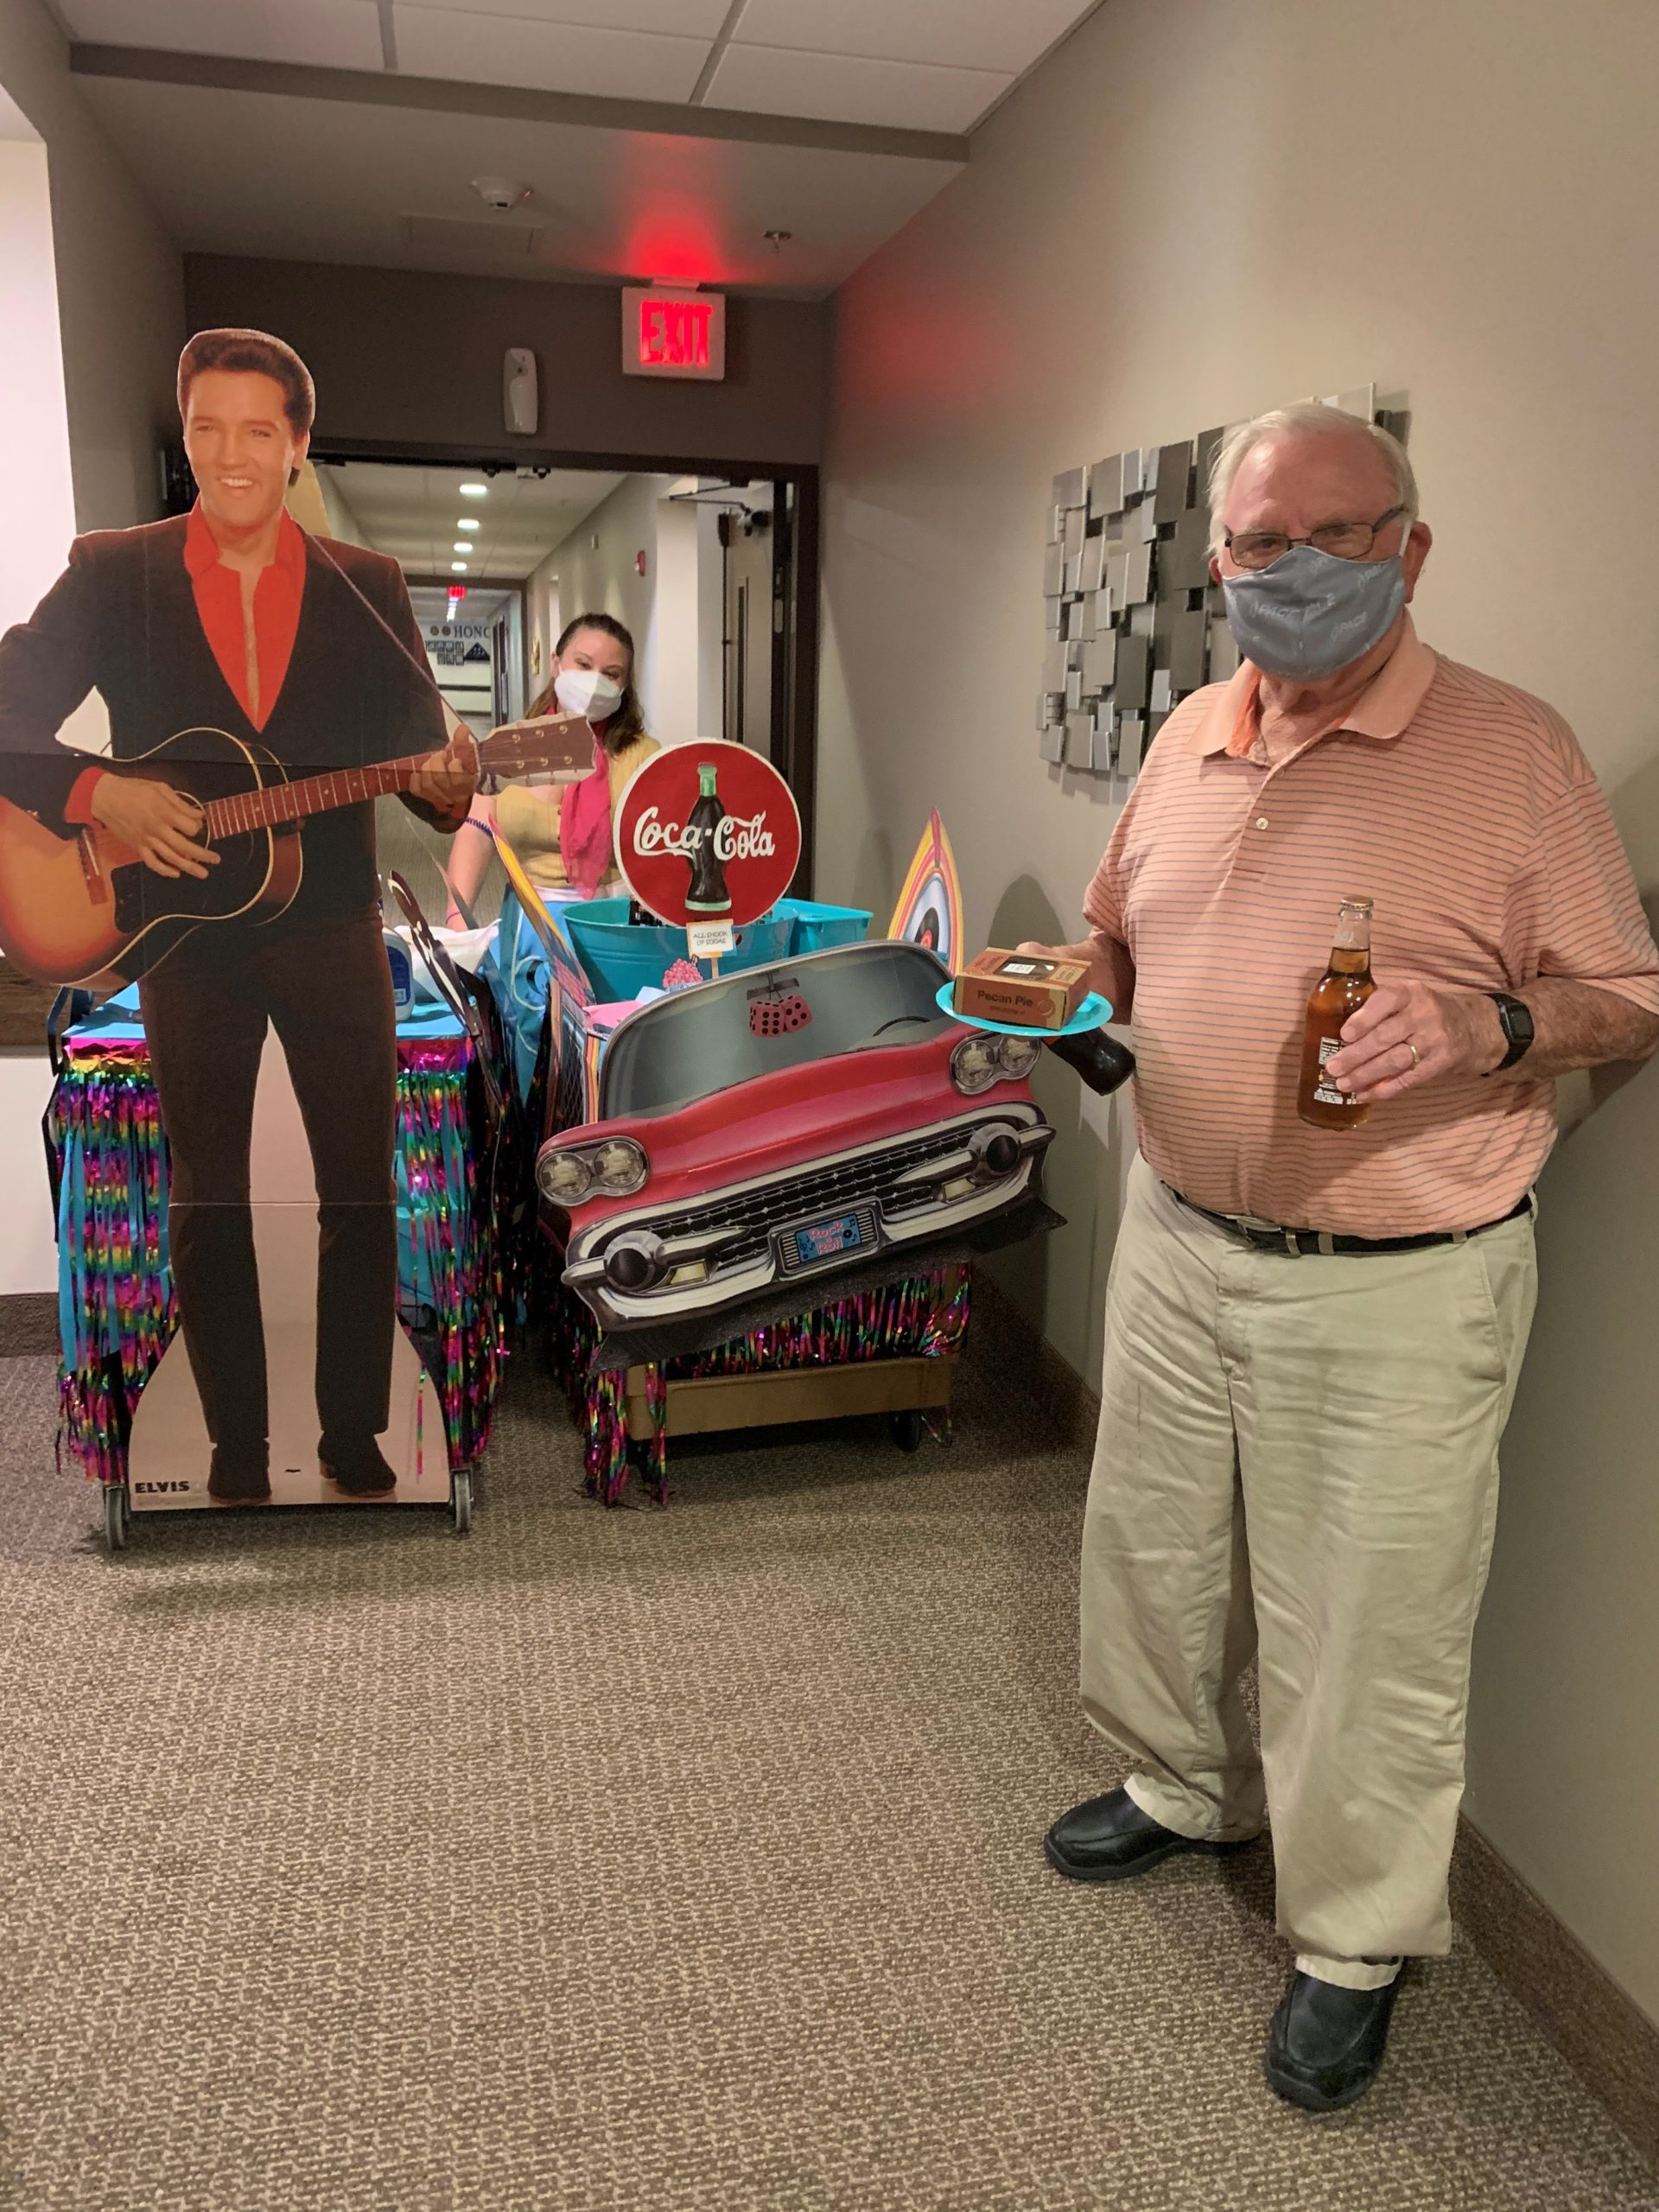 Wayne was so excited when she opened her door to this week's mystery cart- Elvis Presley Themed! Residents danced to his music and tried some of his favorite foods- Peanut Butter and Banana Sandwiches, Monkeybread, and Fried Pickles!